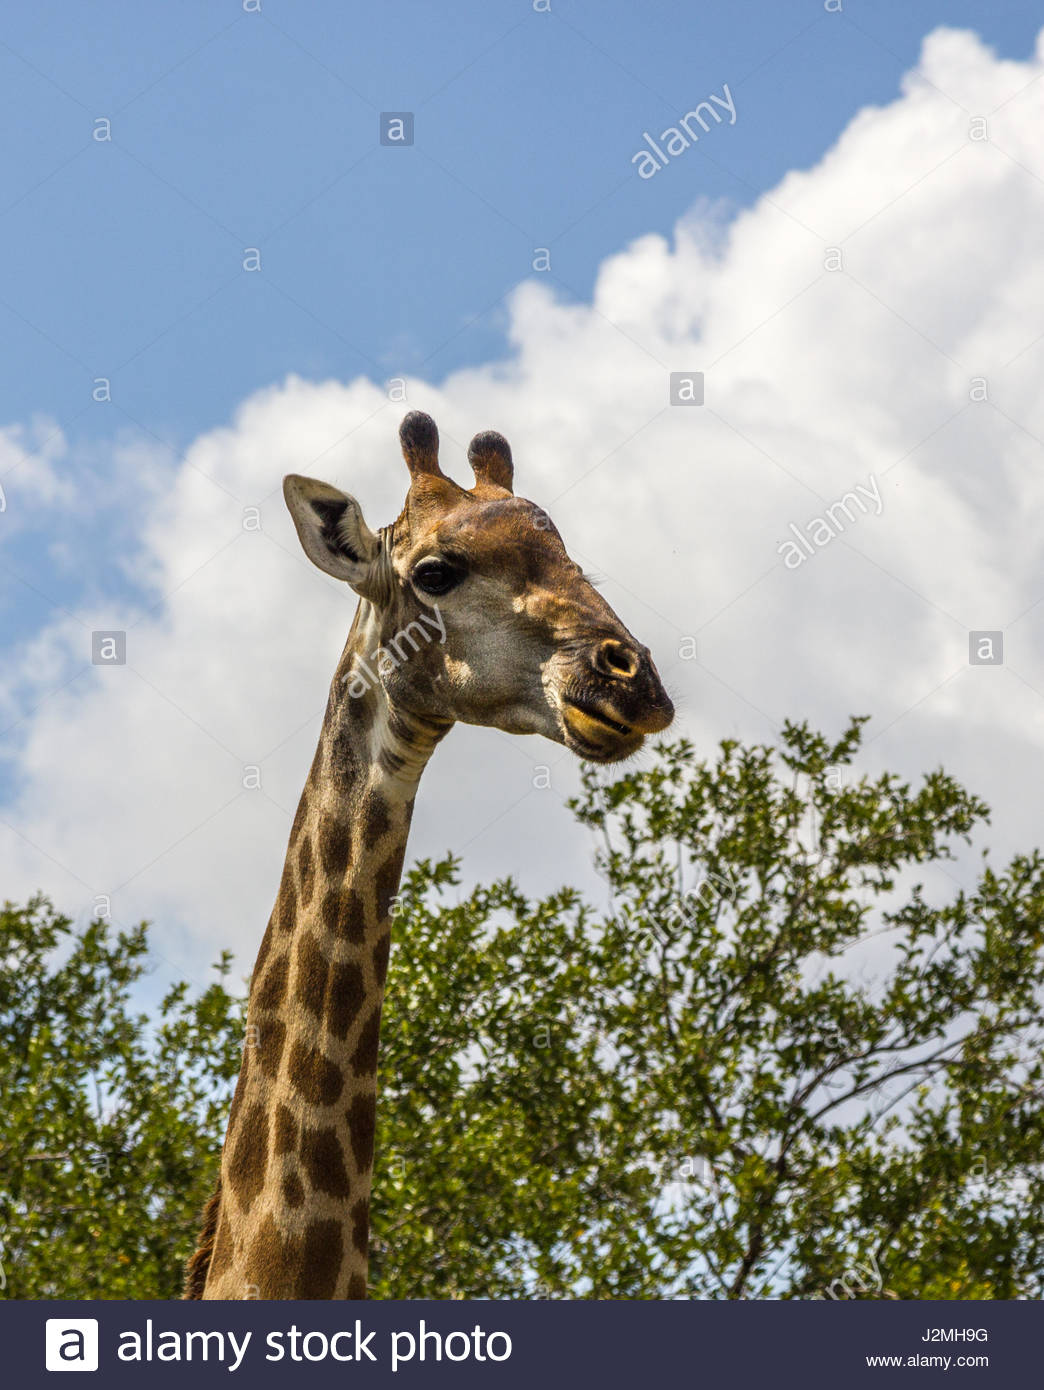 A close-up of a  Giraffe head set against a blue sky with white cumulus clouds. - Stock Image